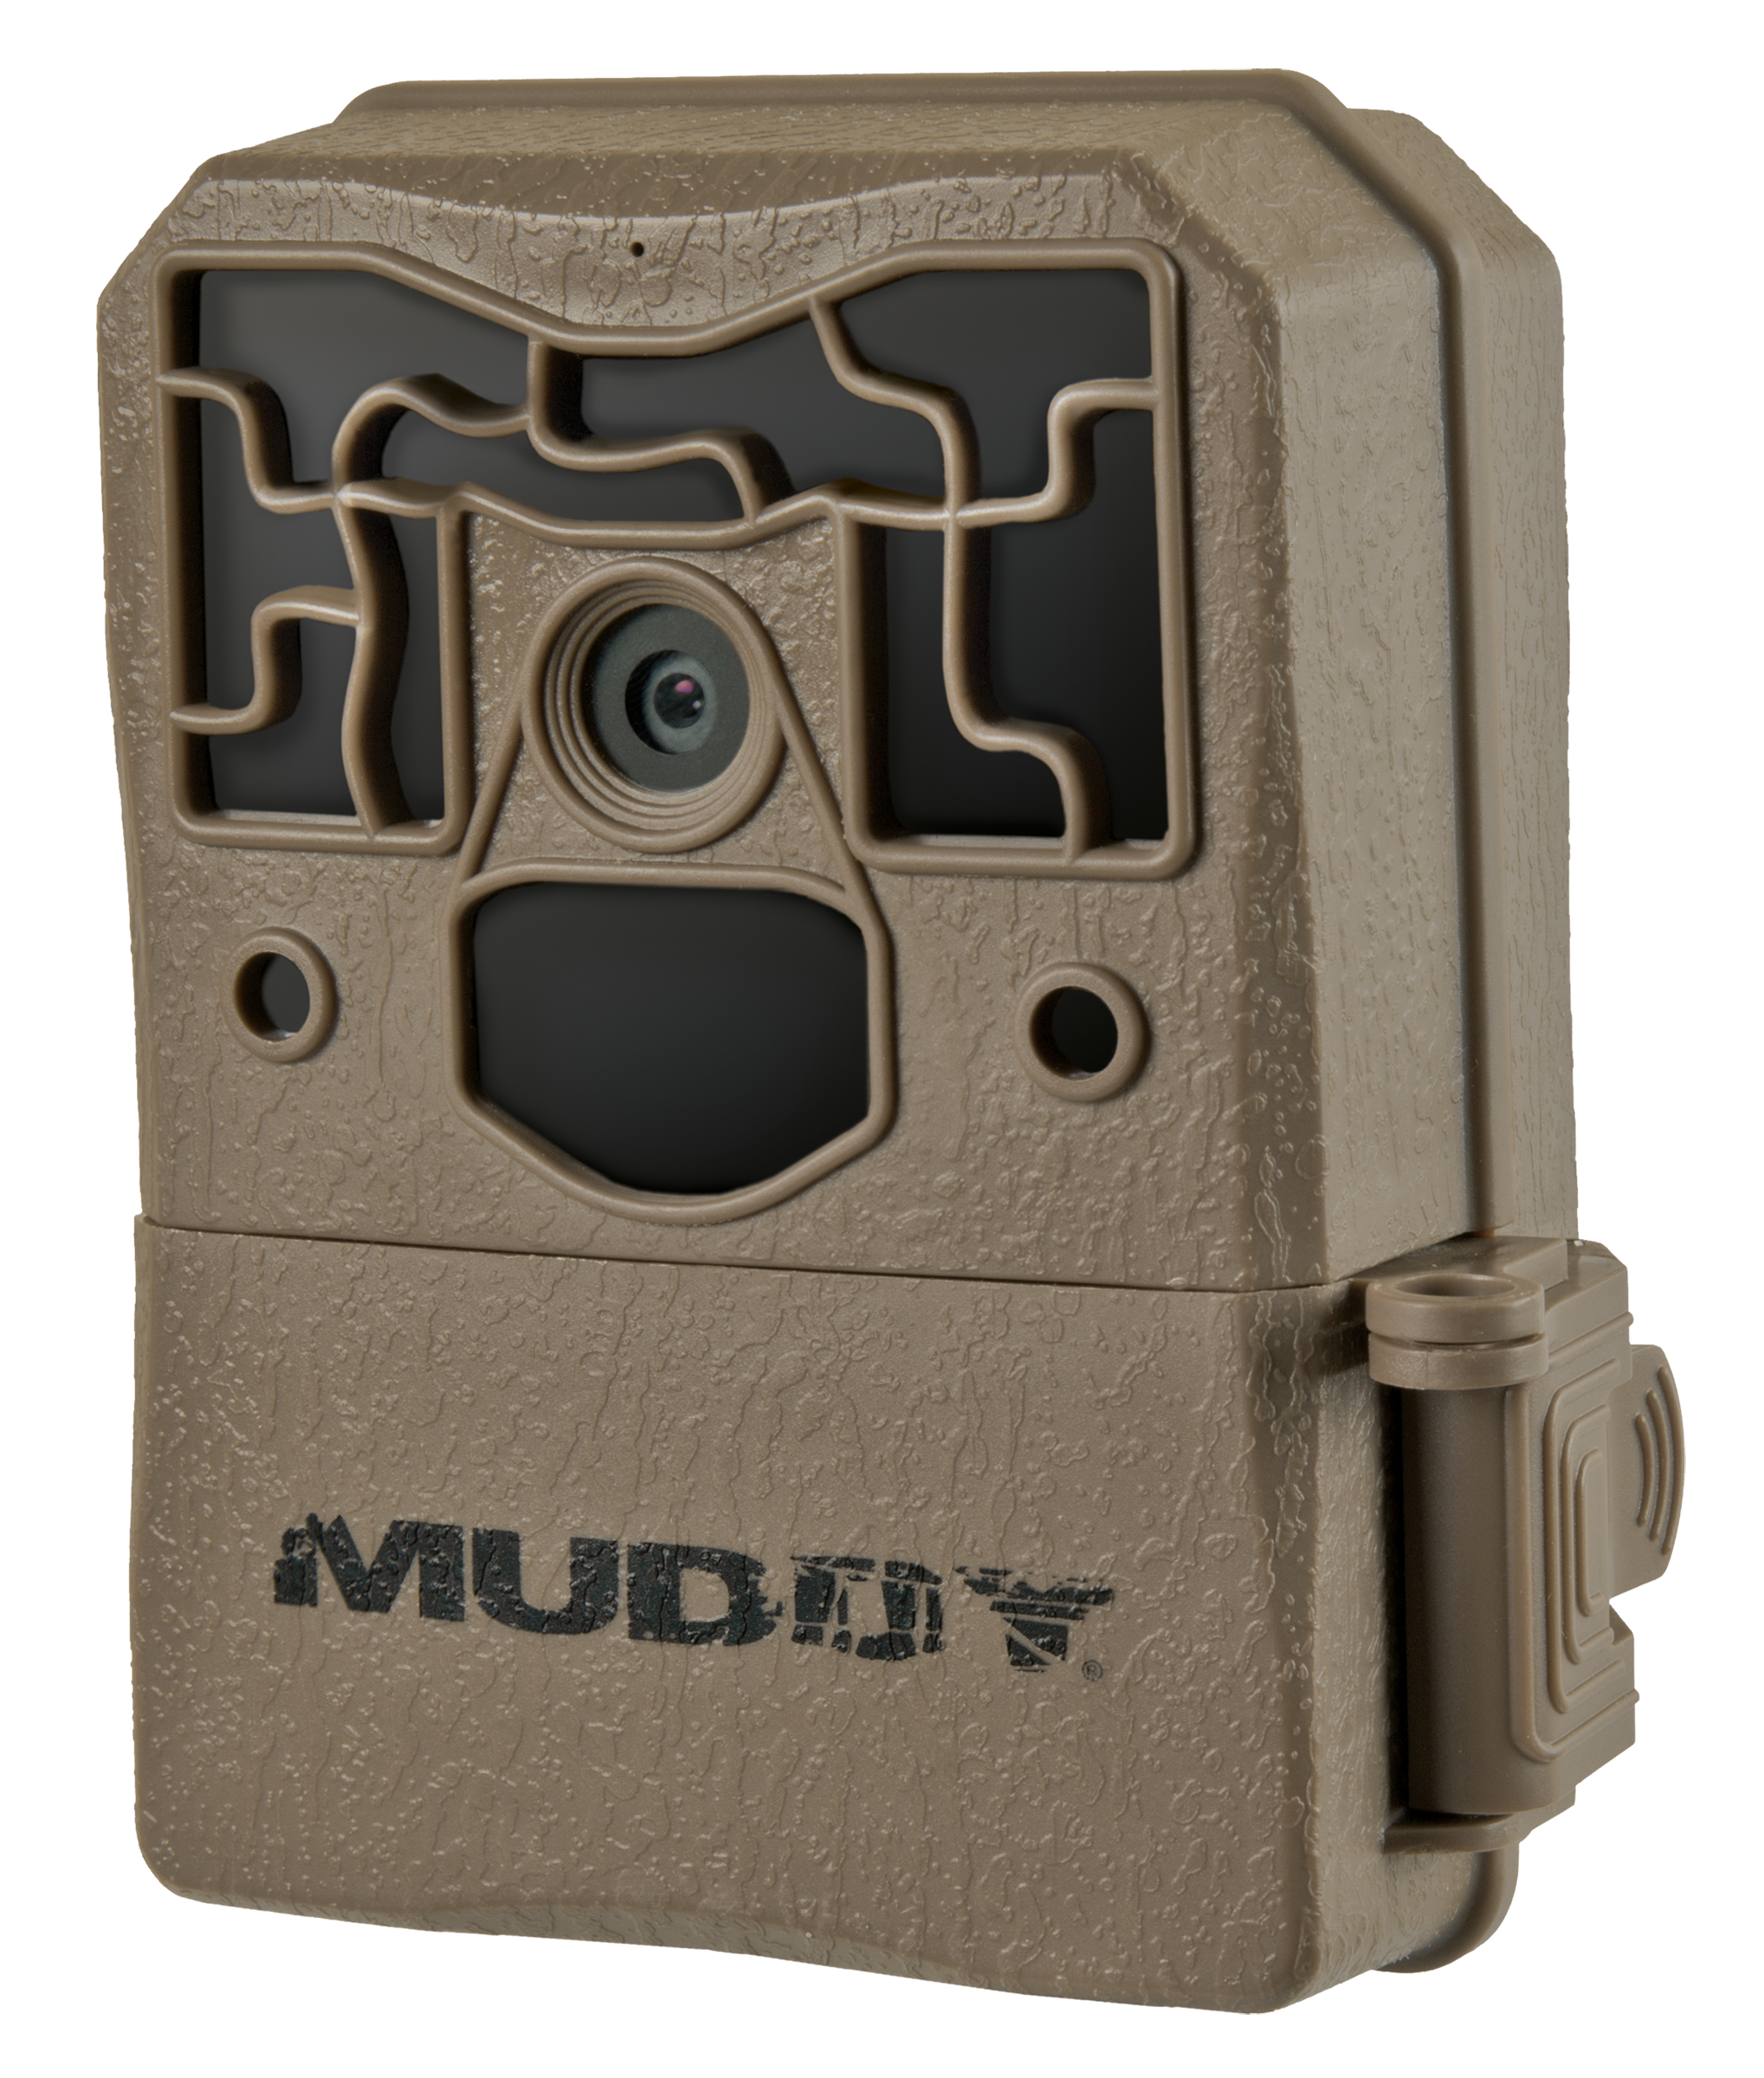 MUDDY OUTDOORS THE PRO-CAM 14 TRAIL CAMERA